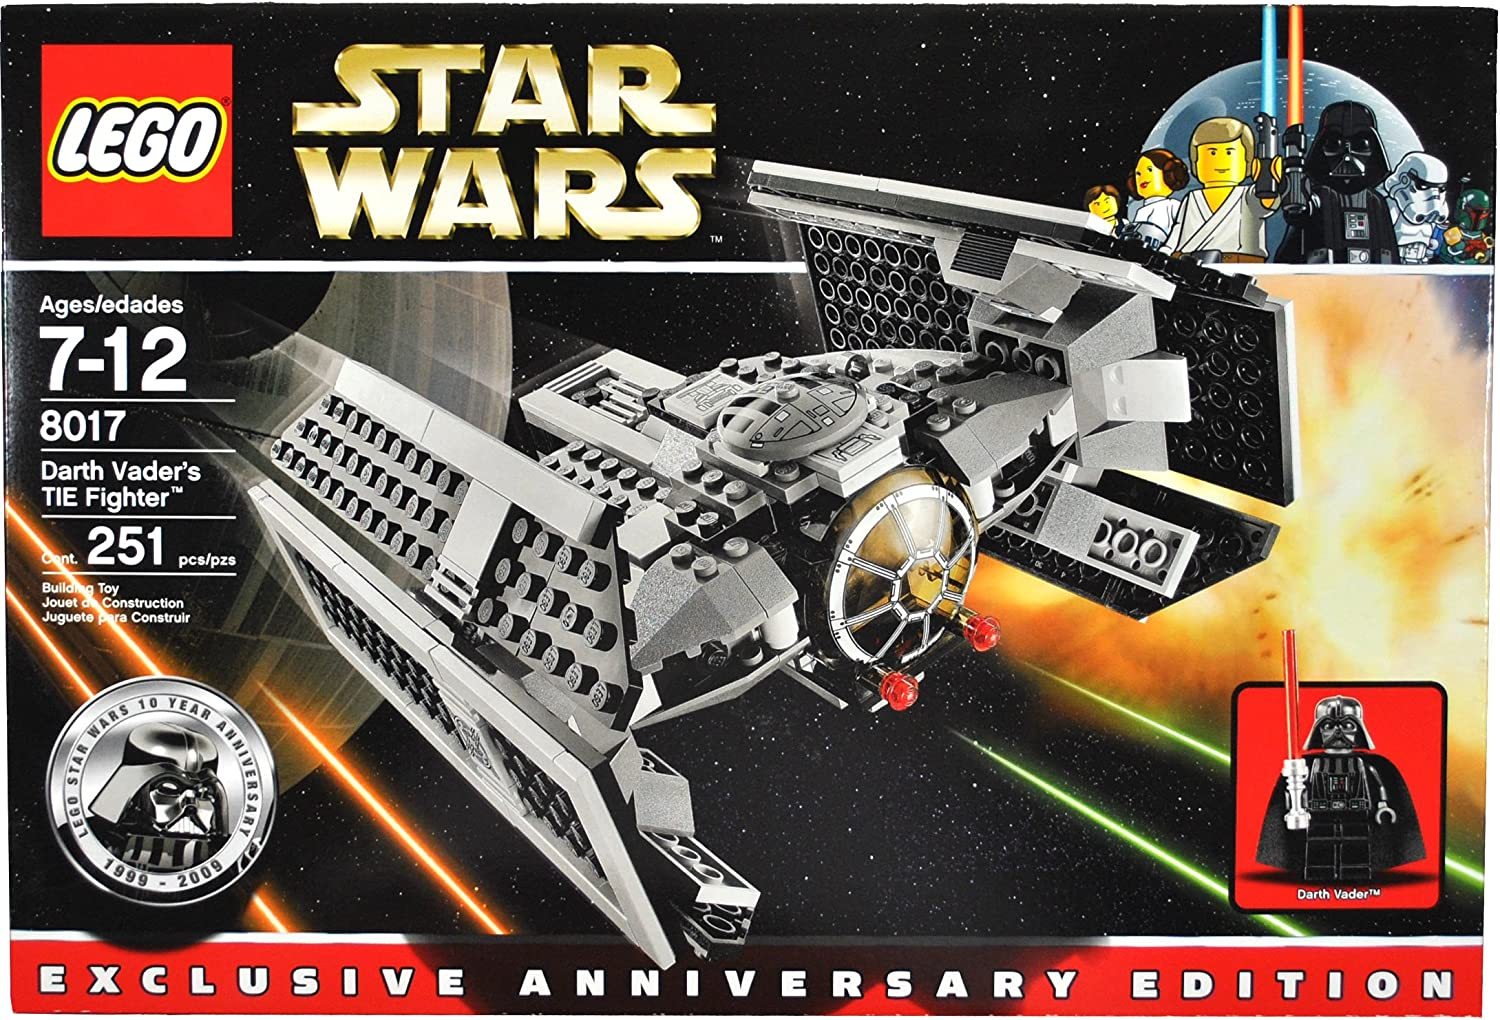 Lego Year 2009 Star Wars Classic Movie Series Exclusive Anniversary Edition Vehicle Set # 8017 - Darth Vader's Tie Fighter with Flick-Firing Missiles and Darth Vader's Minifigure with Red Lightsaber (Total Pieces: 251)